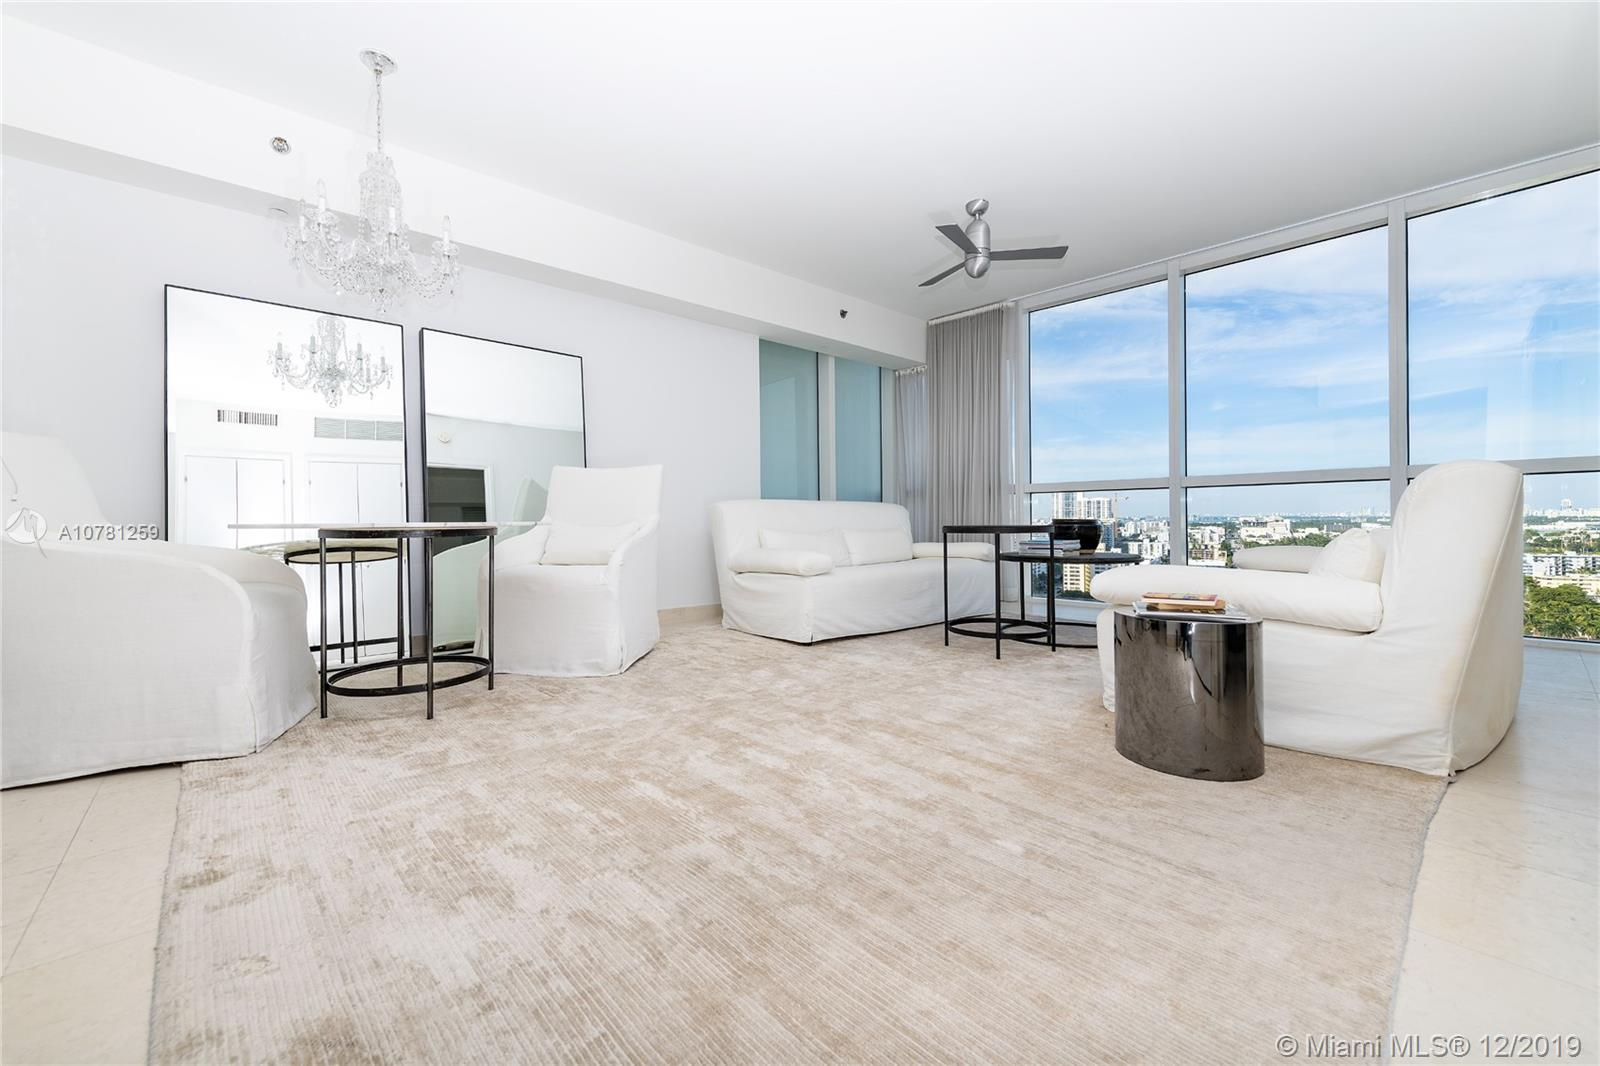 unit 2008 is a great opportunity to own a condo in the famous Icon south beach tower , The unit as an unique allure it comes with Philippe Starck finishes . 1,5 bathroom walking closet washer and dryer . Beautiful view of the bay and the ocean alone with the city of Miami Beach. The 5 stars condominium offers concierge, valet parking, state of the art gym & spa, pools, restaurant. Few blocks from the beach.